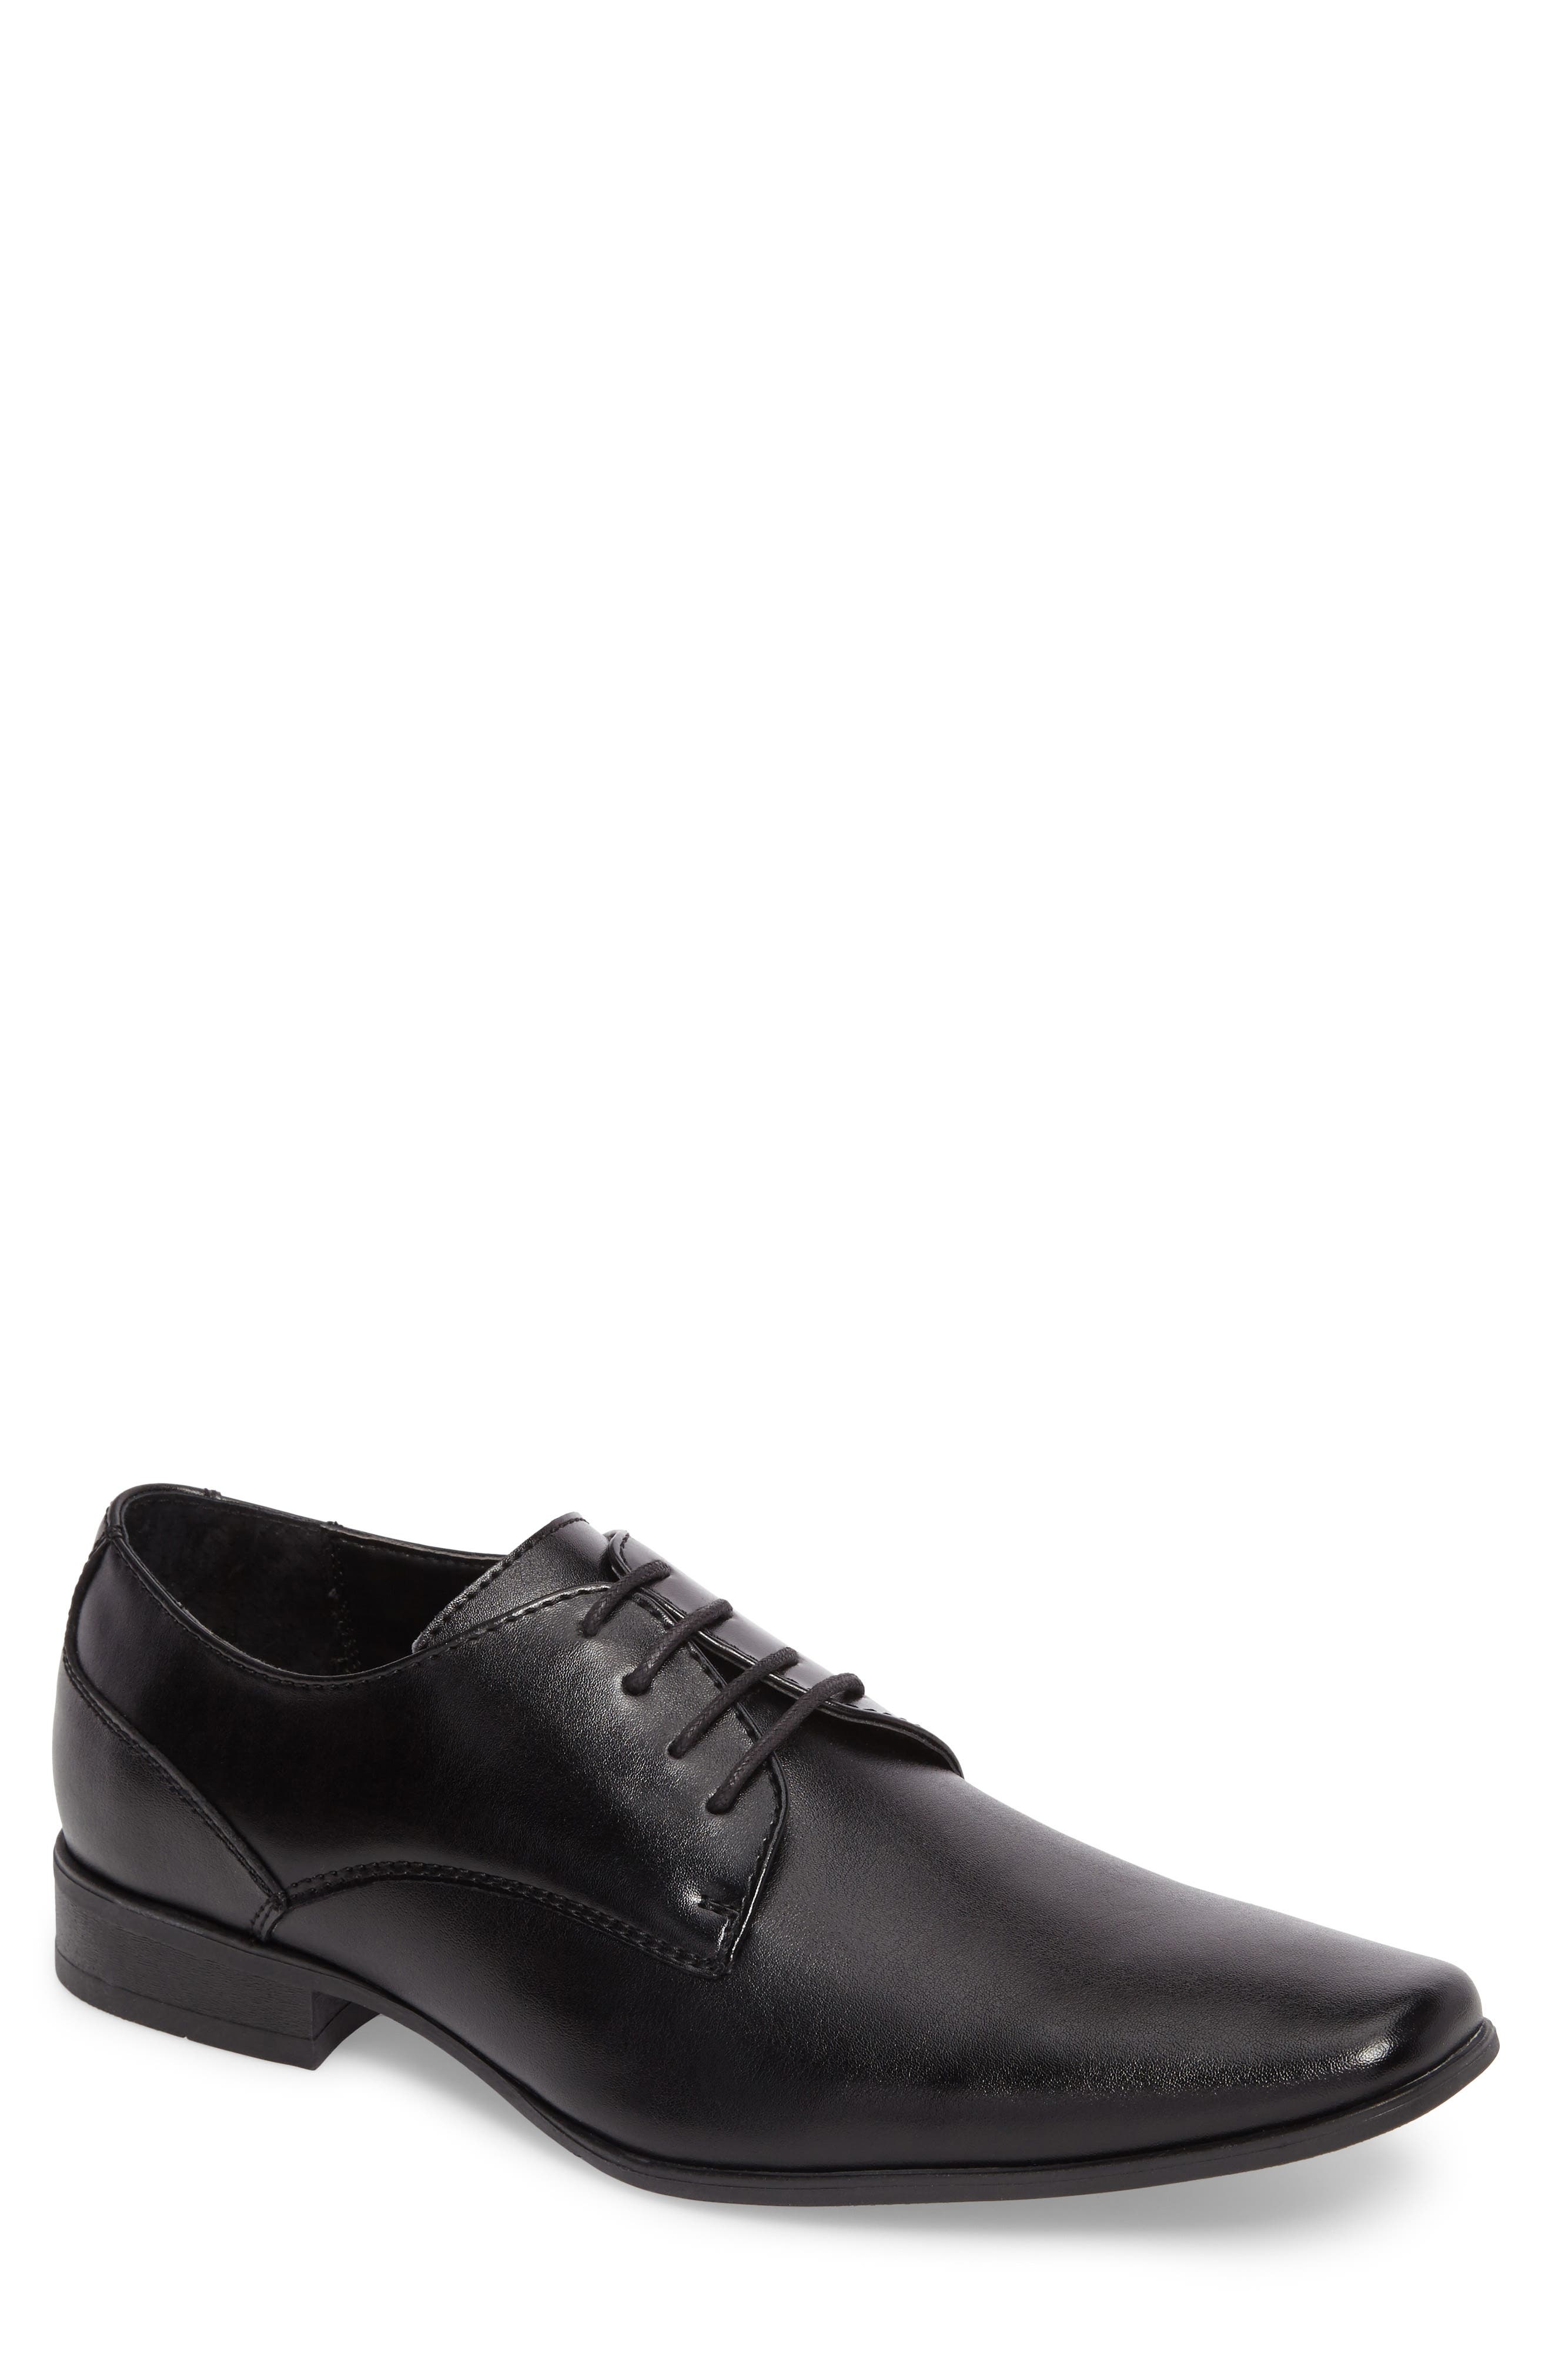 Main Image - Calvin Klein Brodie Plain Toe Derby (Men)